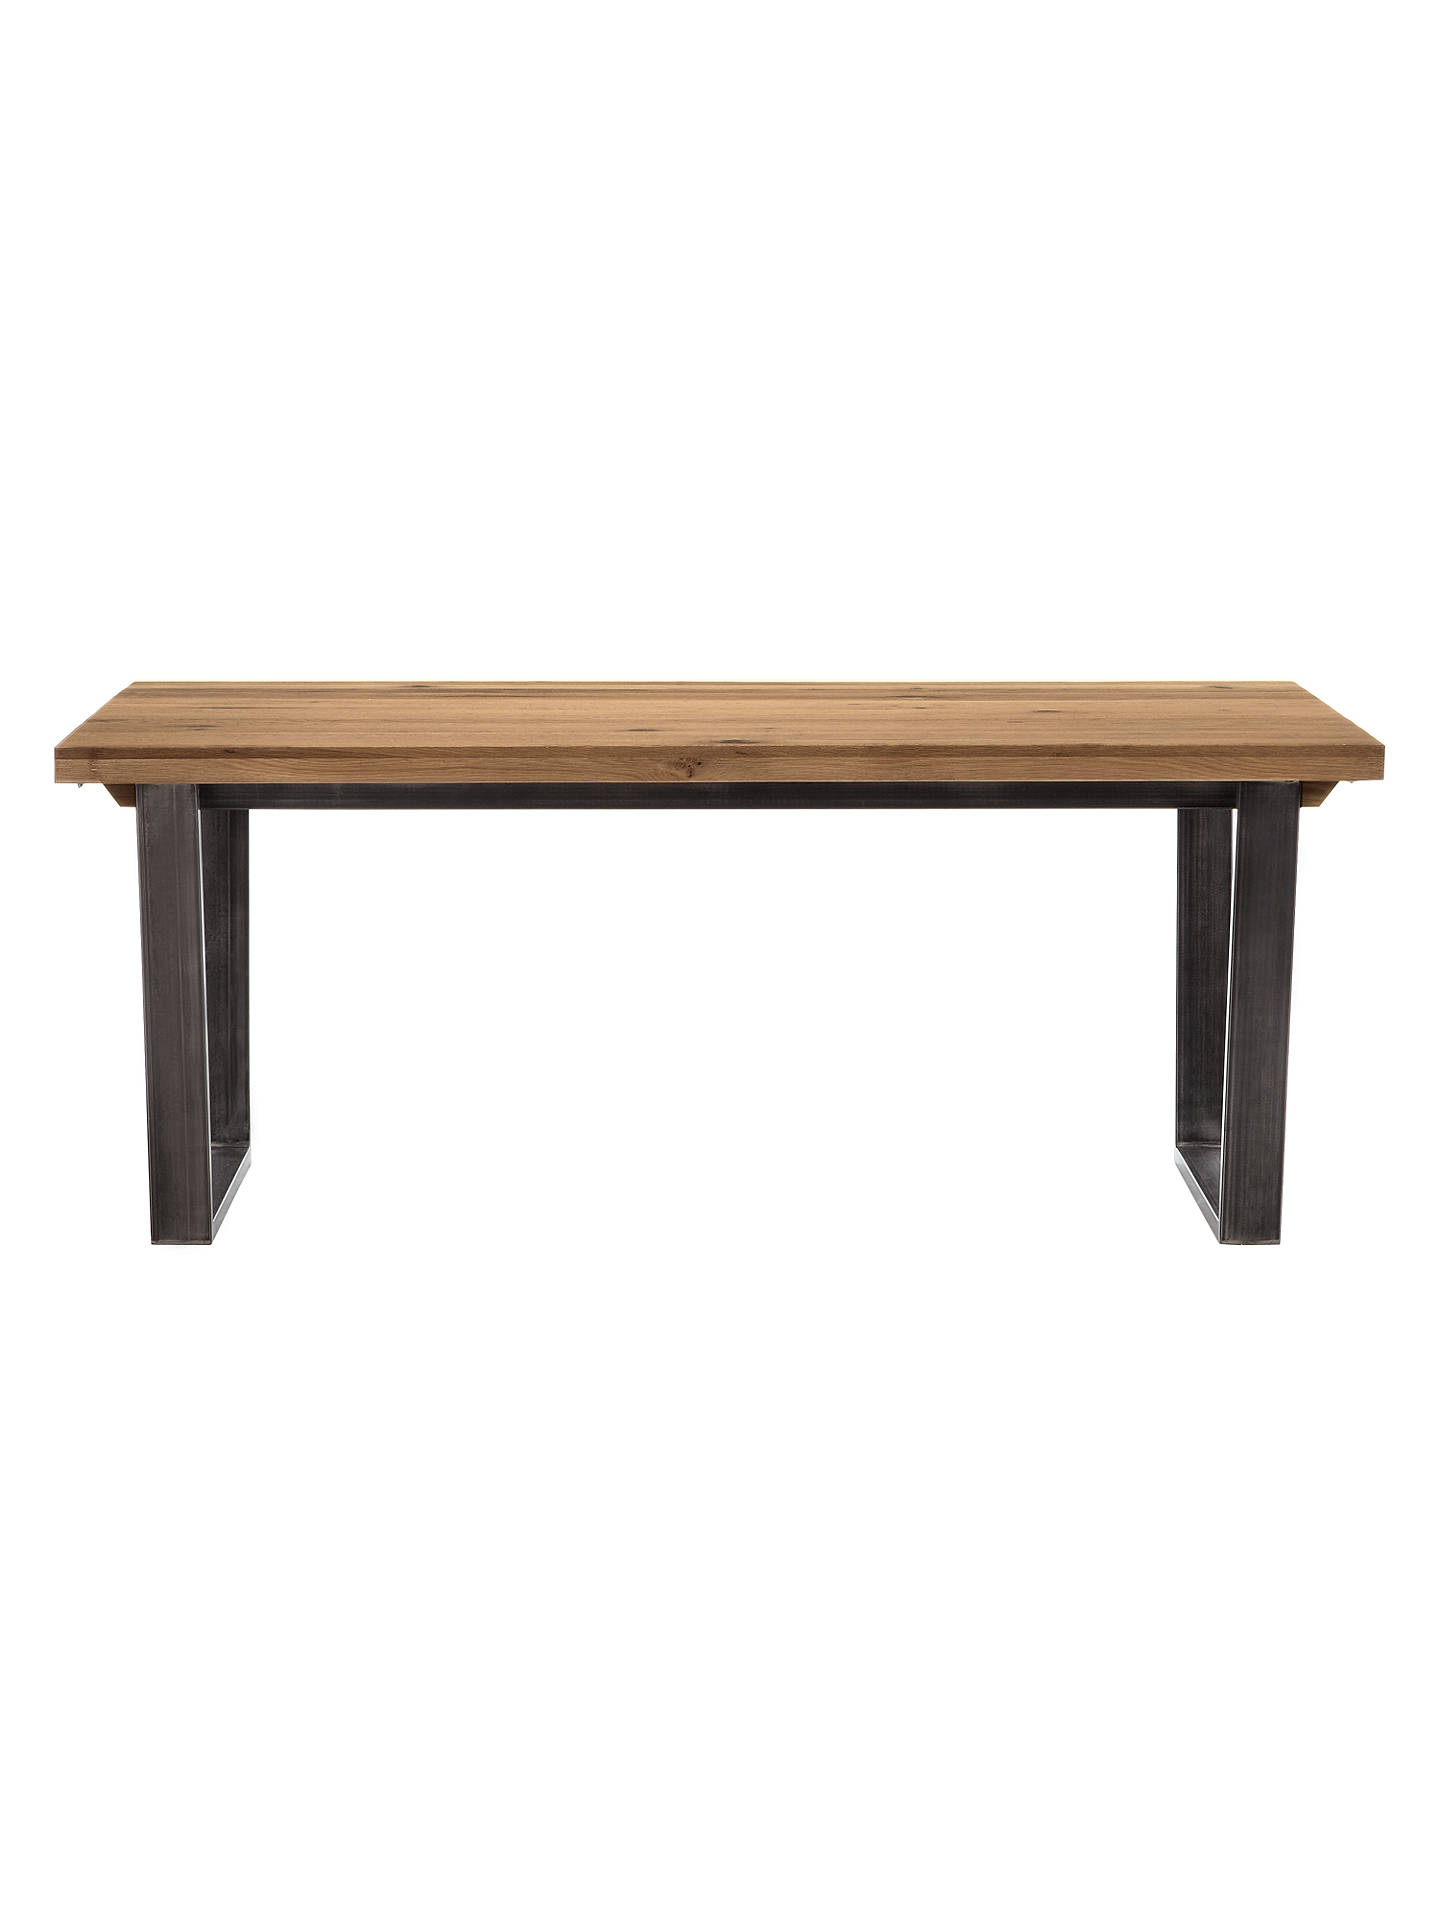 Buy John Lewis & Partners Calia 8-12 Seater Extending Dining Table, Oak Online at johnlewis.com